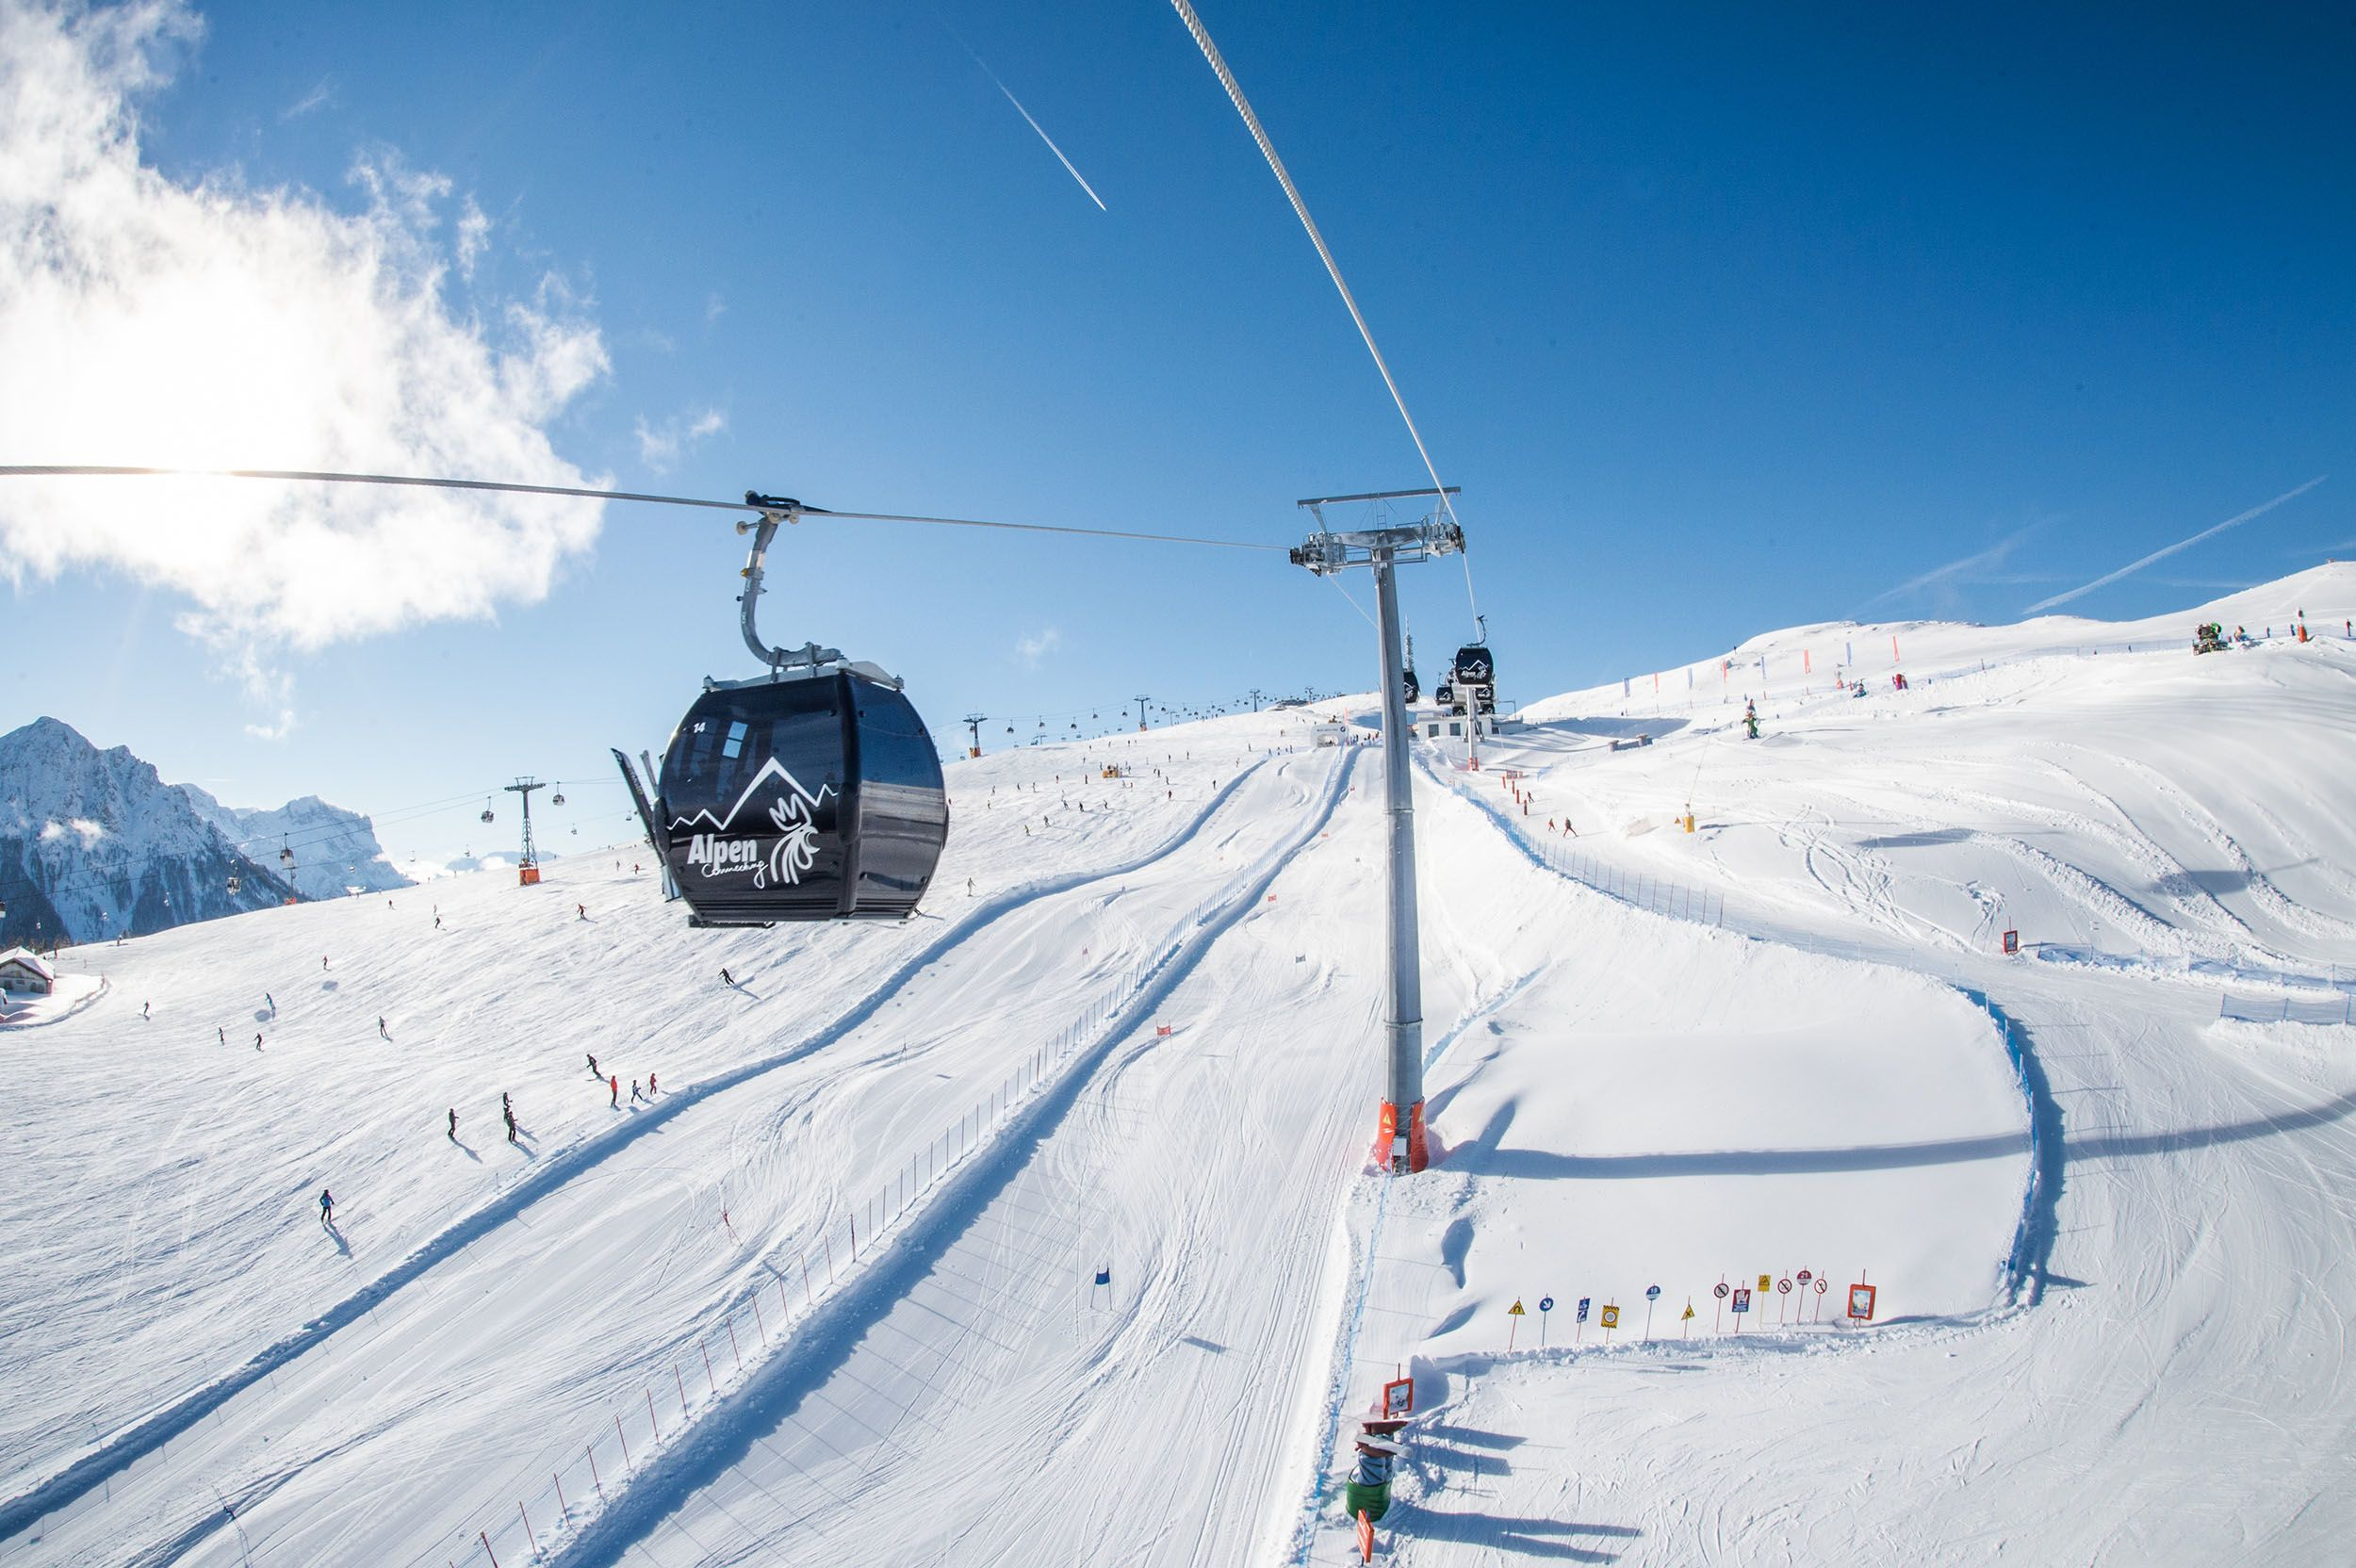 pr-w-kronplatz-lifts-copyright-tvb-kronplatz-photo-harald-wisthaler-alpen-connecting